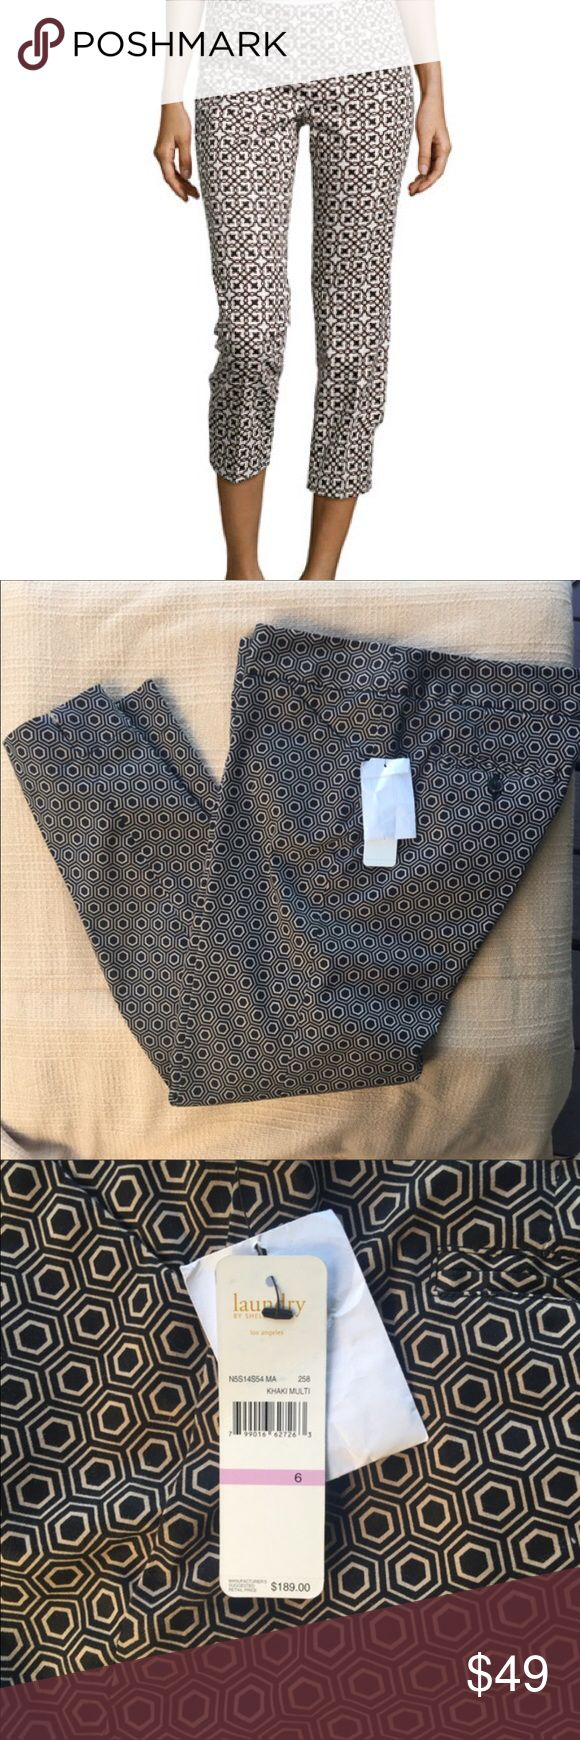 """NWT Laundry Shelli Segal Cropped Pants New with tags slick cropped pants, original price was $189. These are sleek enough for the office, and cool enough to wear out in the evening as well. You can't go wrong. The inseam is 26"""", waist (laid flat) about 16 1/2 """". Laundry by Shelli Segal Pants Capris"""